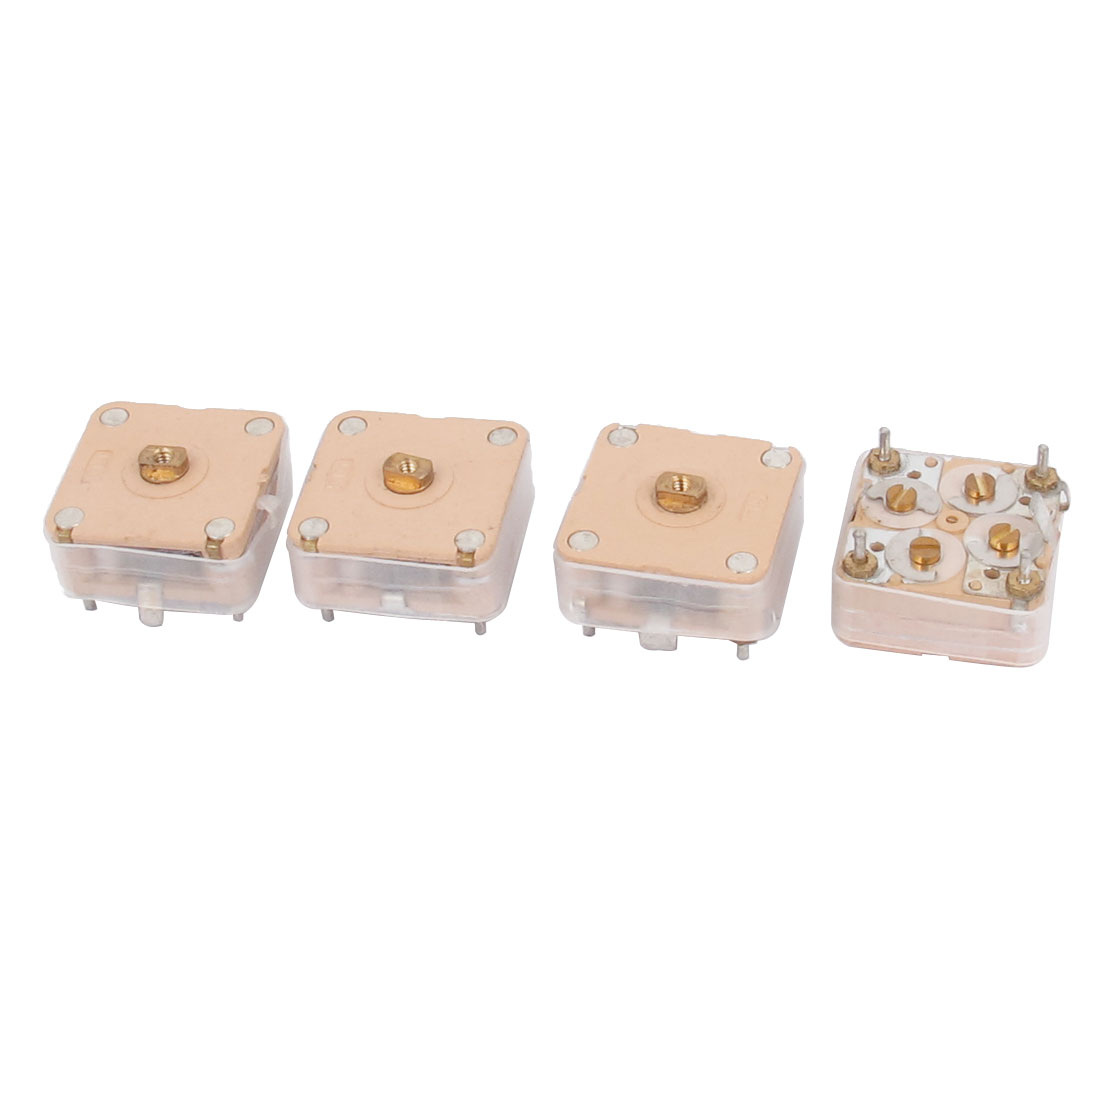 444HF 20pF*2 Capacitance Medium Variodence Adjustable Variable Capacitor 4pcs